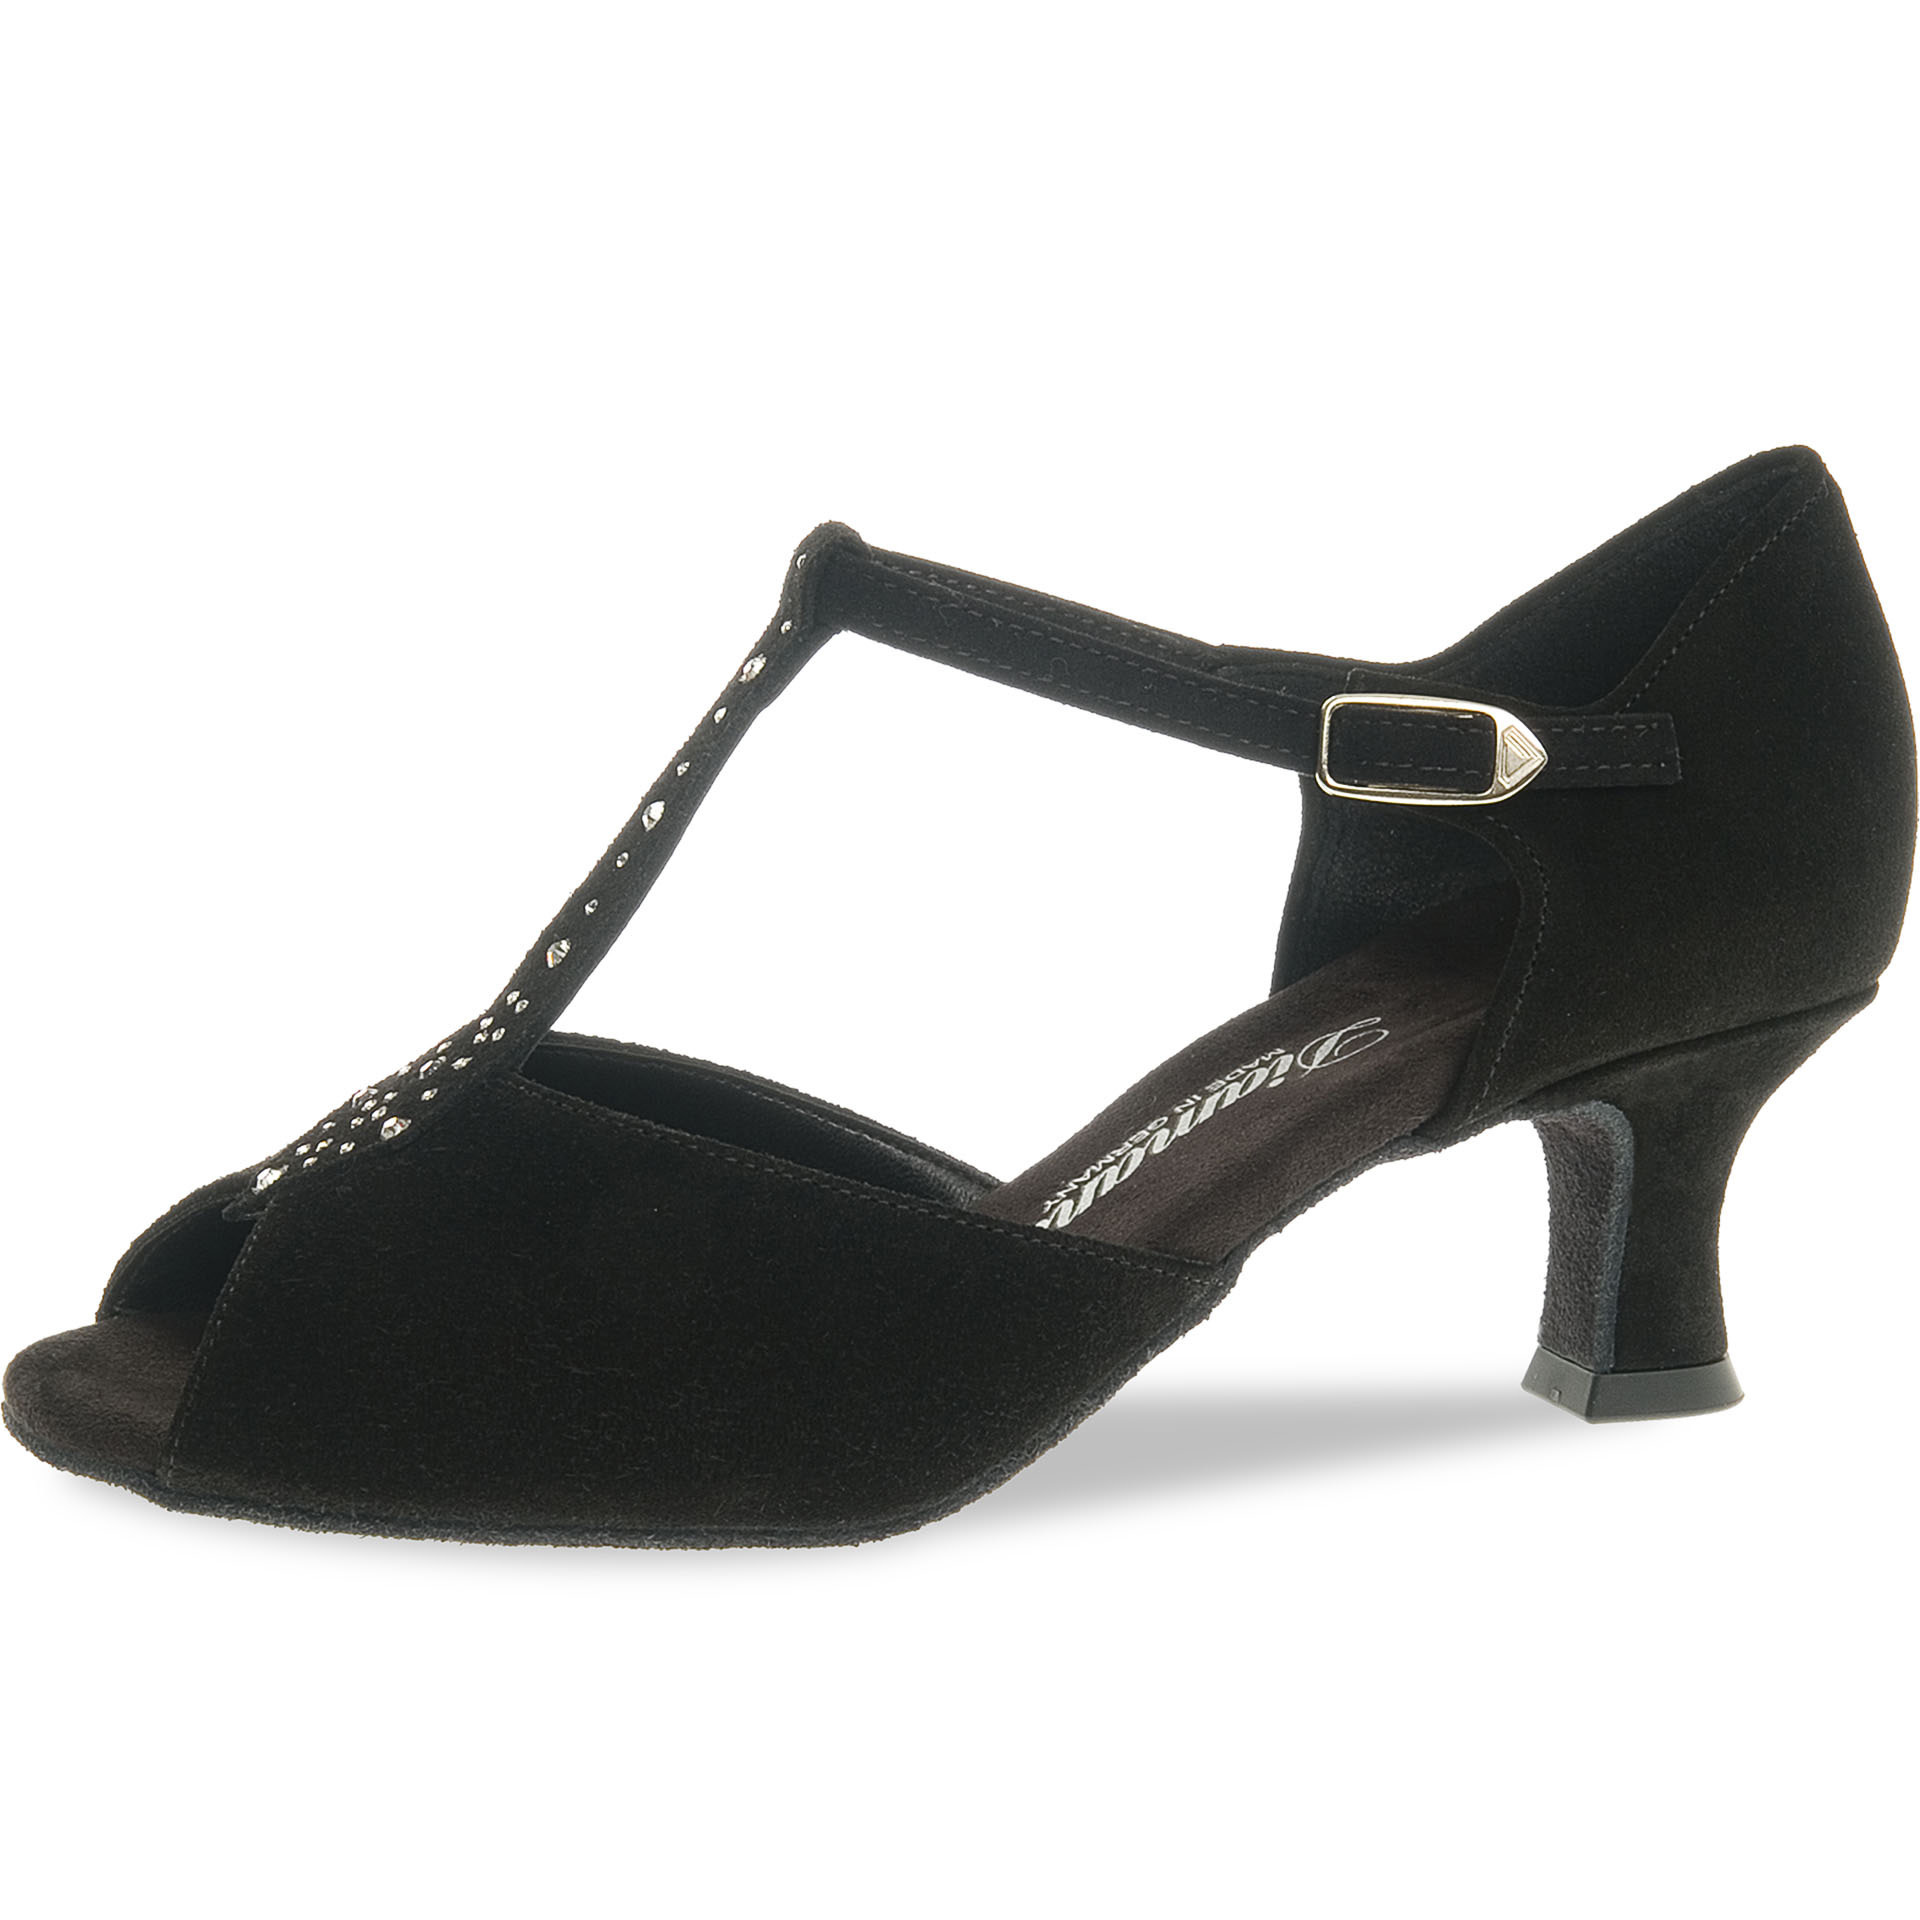 Diamant 010-064-101-Ballroom Shoes 2'' Suede Sole Rhinestones-BLACK SUEDE